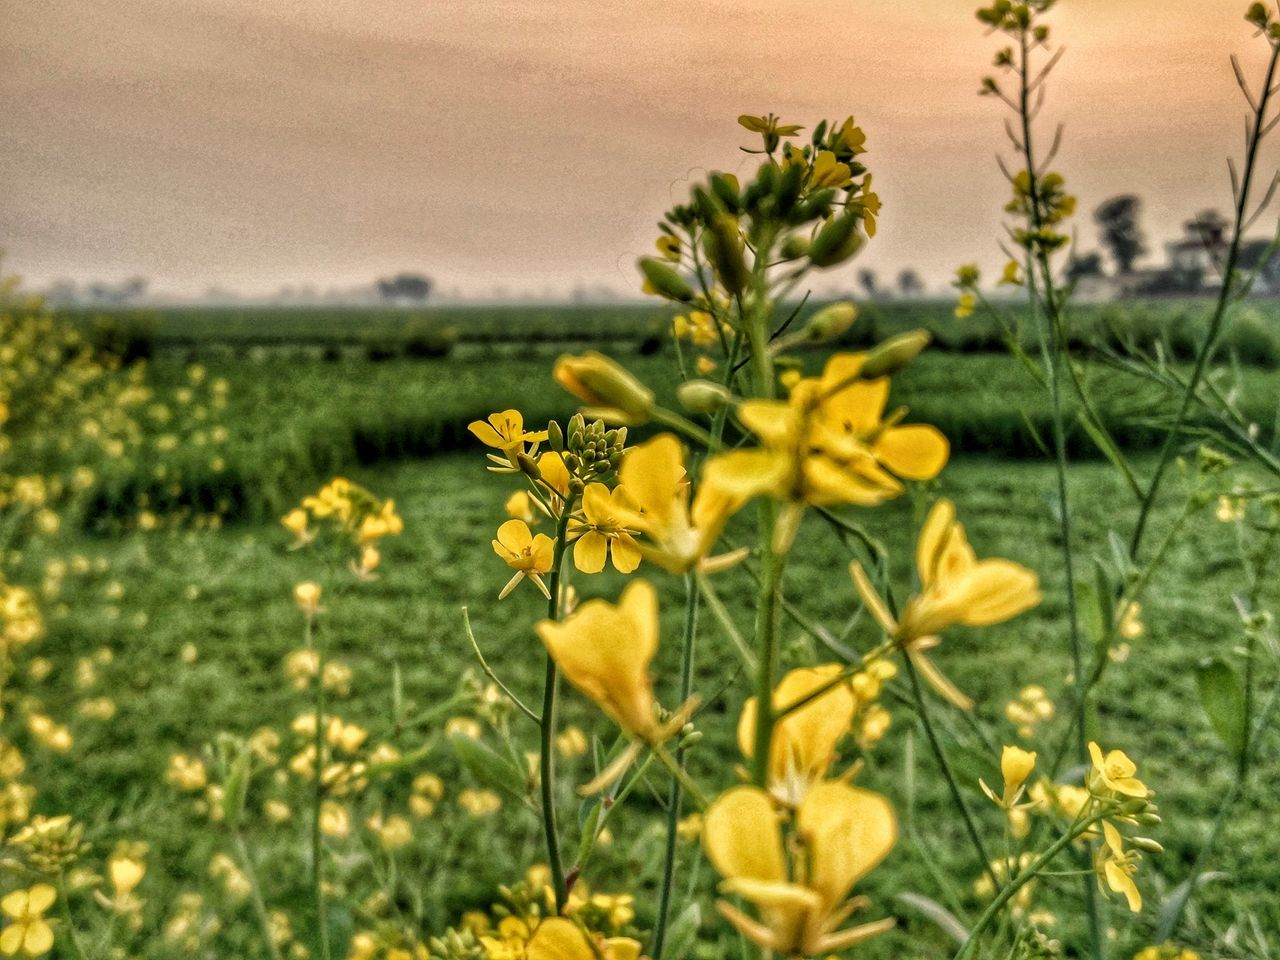 Growth Flower Beauty In Nature Nature Plant Field Yellow Fragility No People Outdoors Freshness Flower Head Day Oneplus2 Indianphotograhers Tranquil Scene Close-up